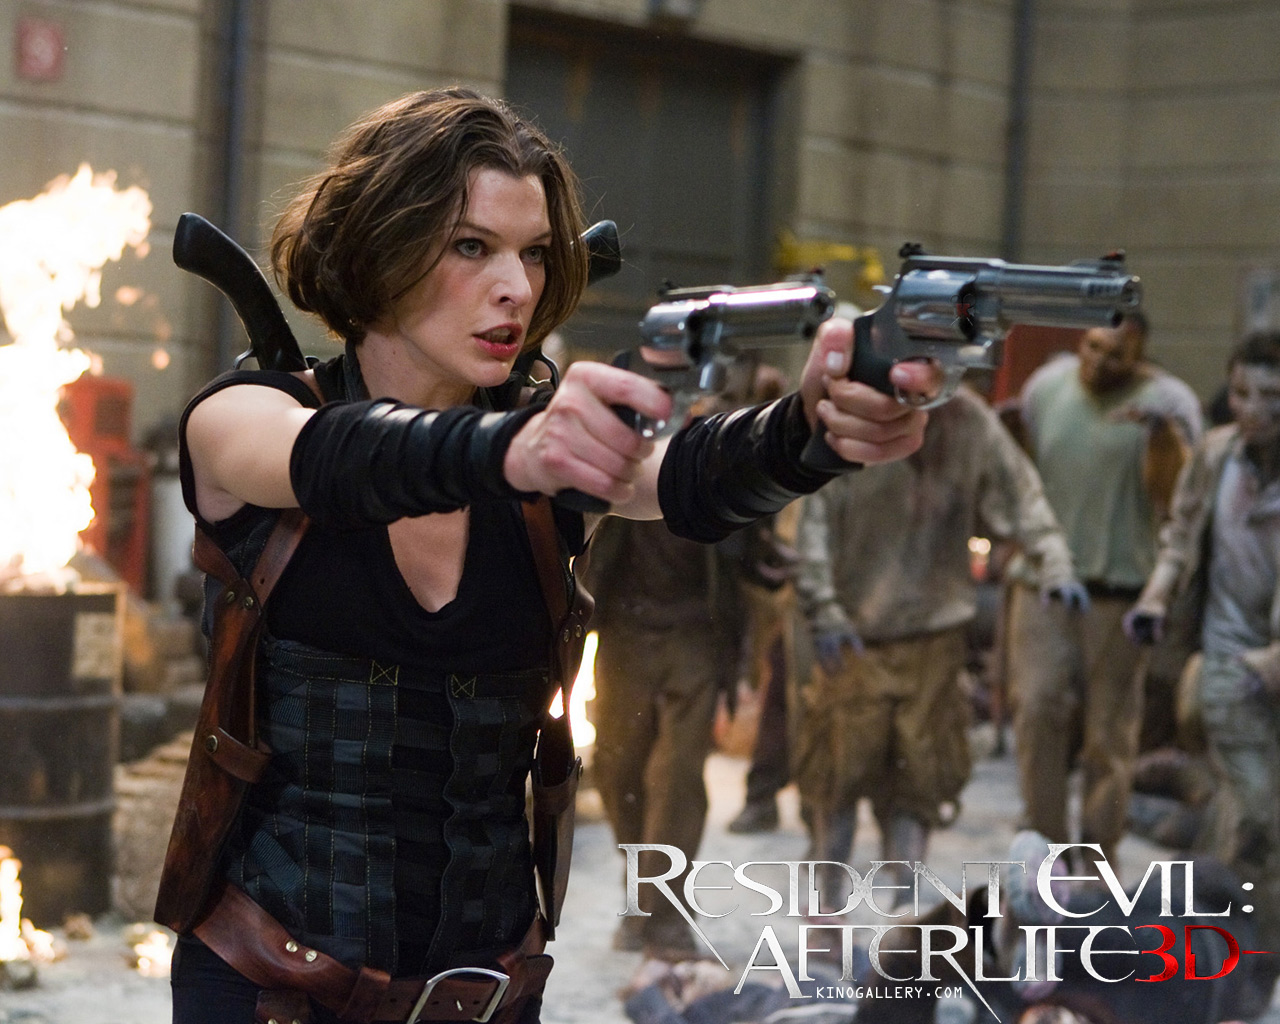 Desktop Wallpapers Resident Evil - Movies Resident Evil 4: Afterlife Milla Jovovich Movies film